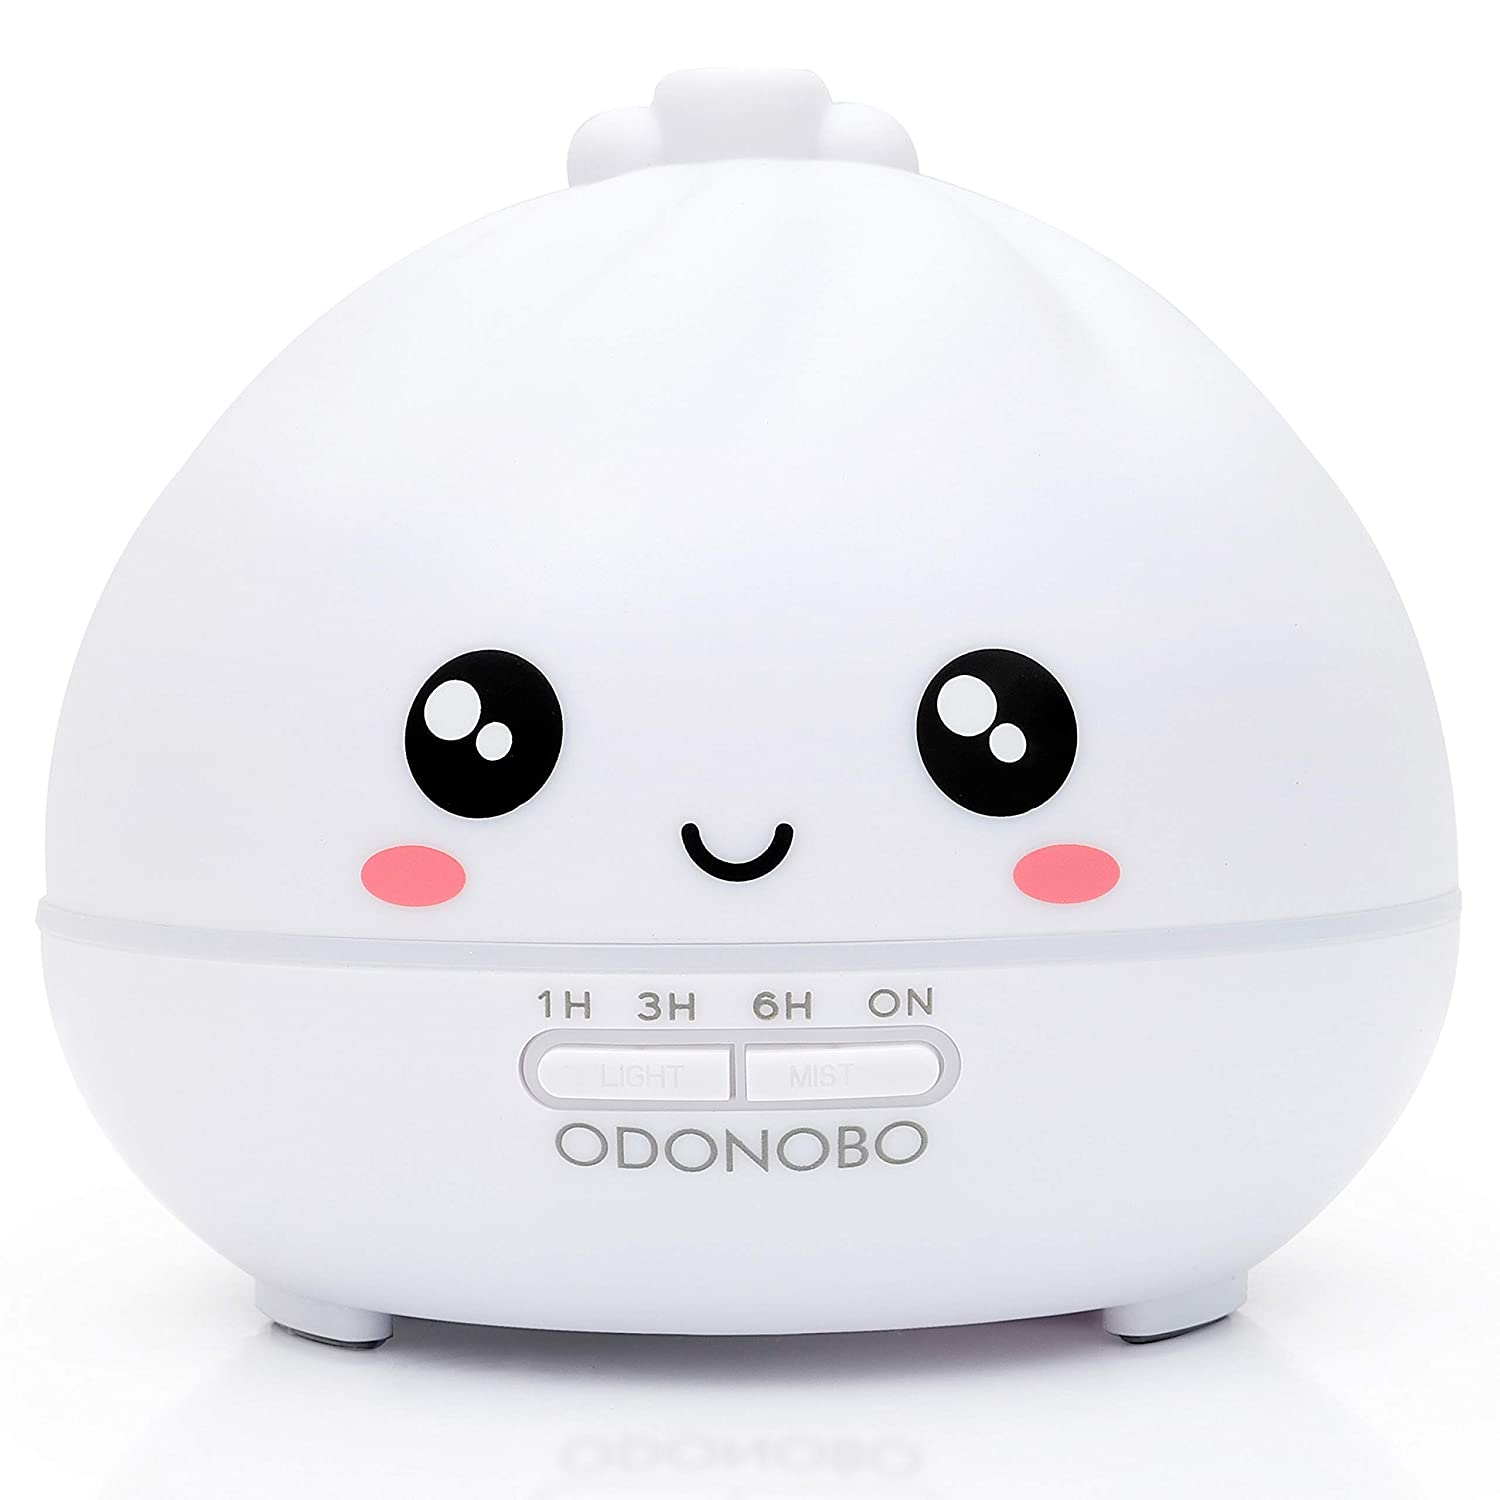 ODONOBO Cute Dumpling Essential Oils Diffuser for Kids, 300ml Cool Mist Air Mini Humidifier, Ultrasonic Aroma Oil Vaporizer, Aromatherapy 7 LED Colored Night Light - Benny Bao Design